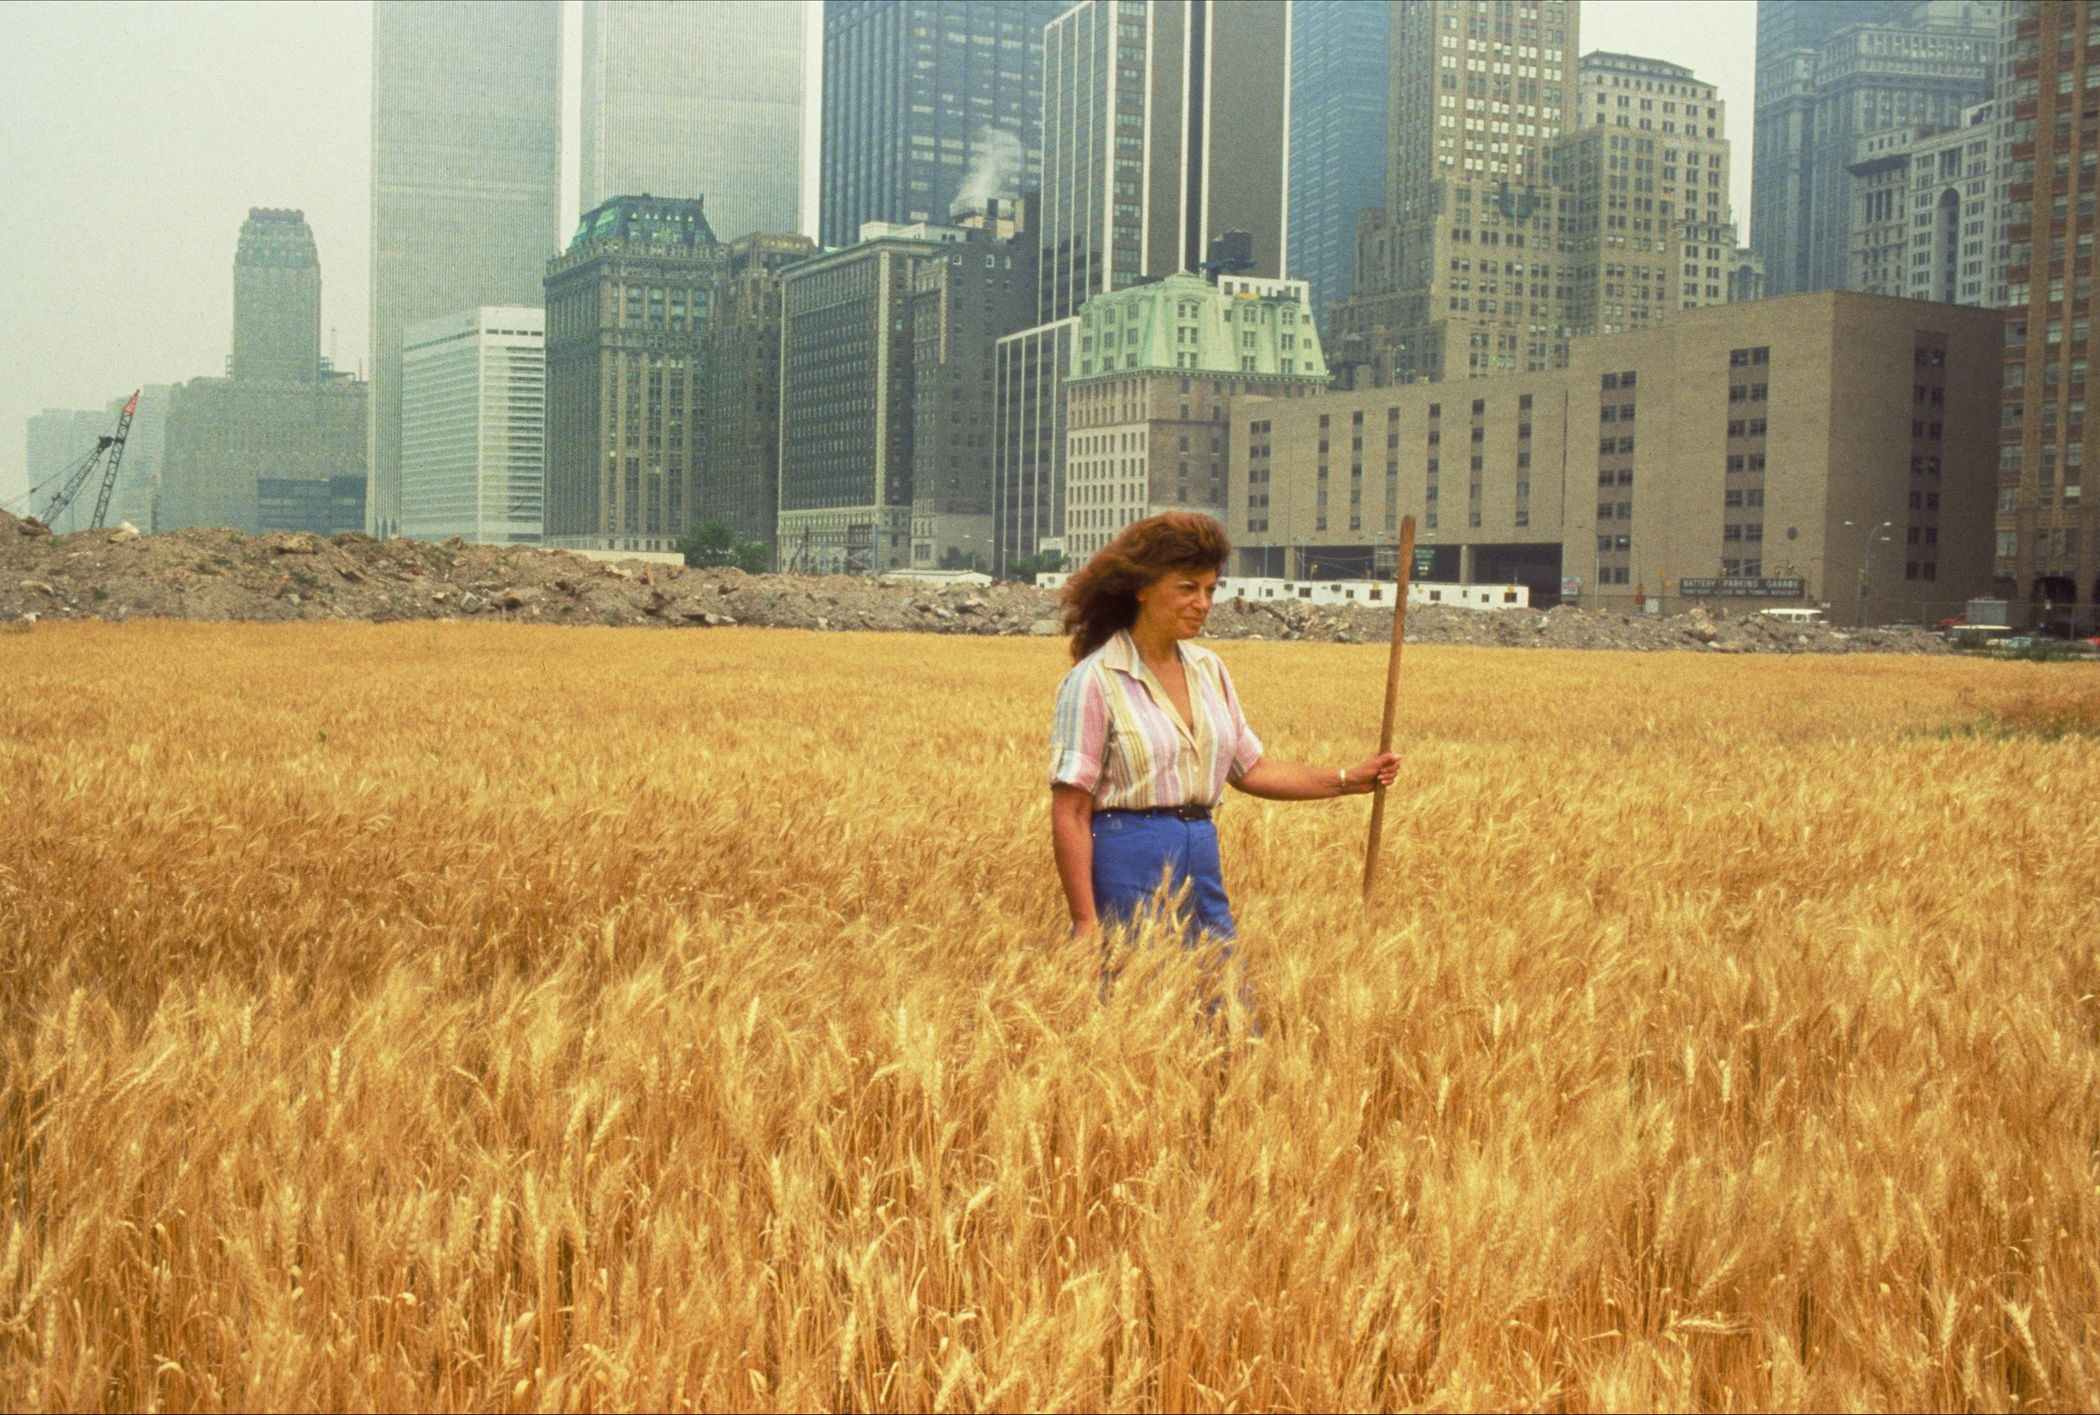 In 1982 artist Agnes Denes was commissioned by New York City's public art fund to plant and harvest wheat in downtown Manhattan. The land was worth $4.5 billion. The piece was intended as social commentary for our misplaced priorities, contrasting our perspective on food versus real estate, but perhaps the wheat is better thought of as a parallel to capital than a foil.